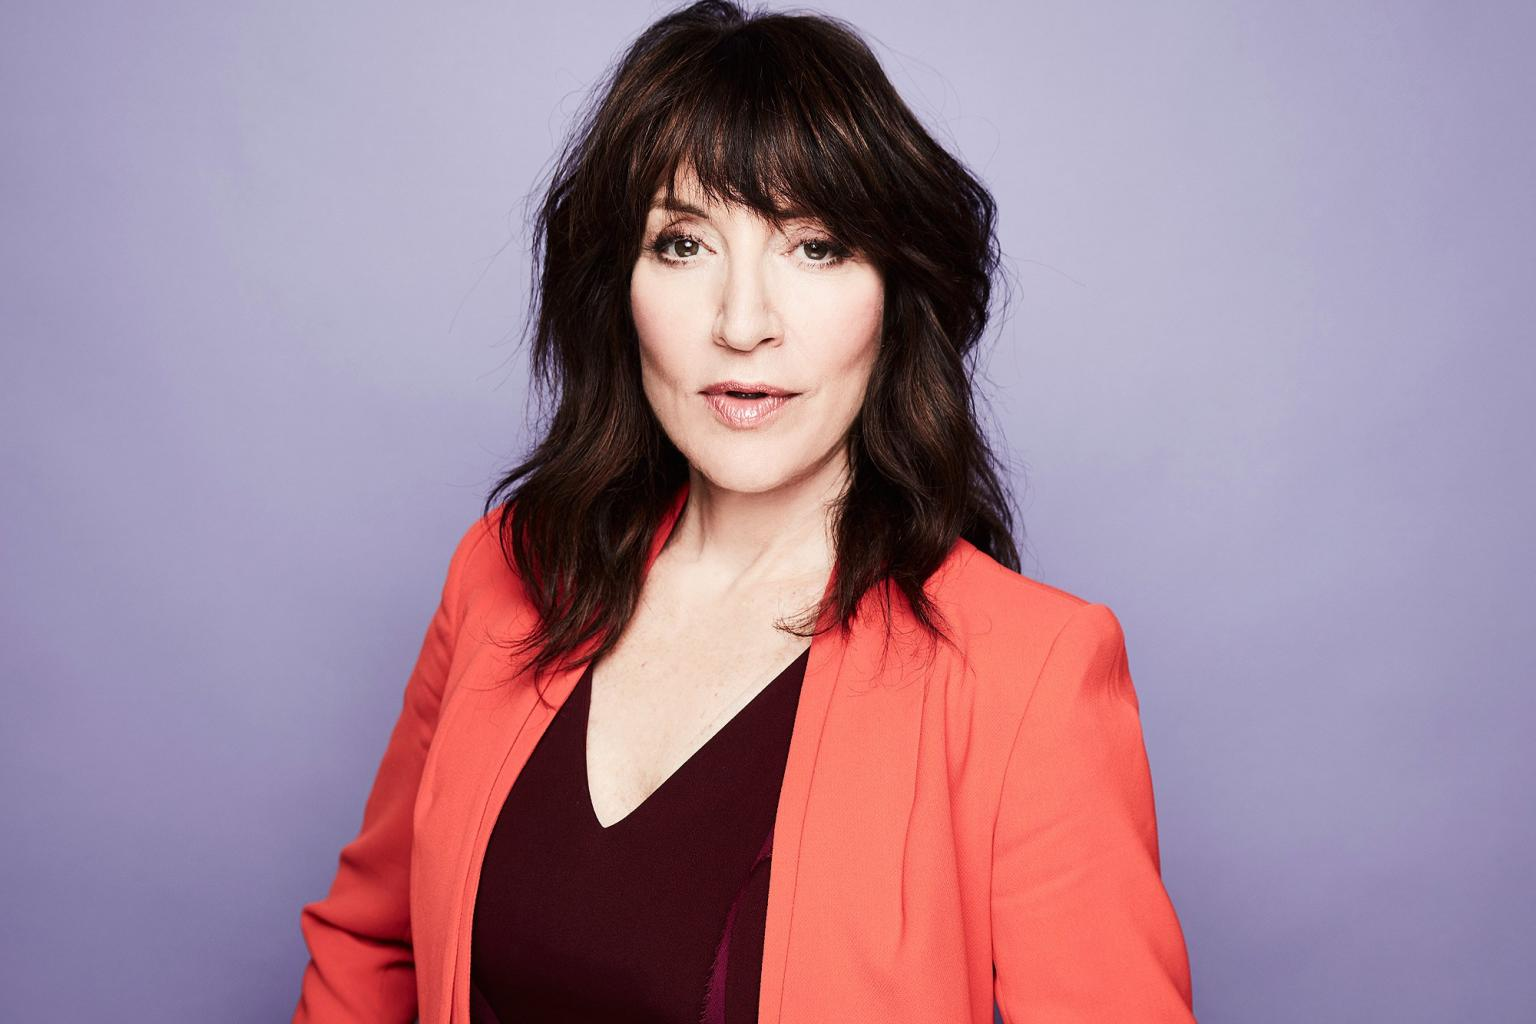 Katey Sagal Reveals 15-Year Battle with Drug Addiction In New Memoir